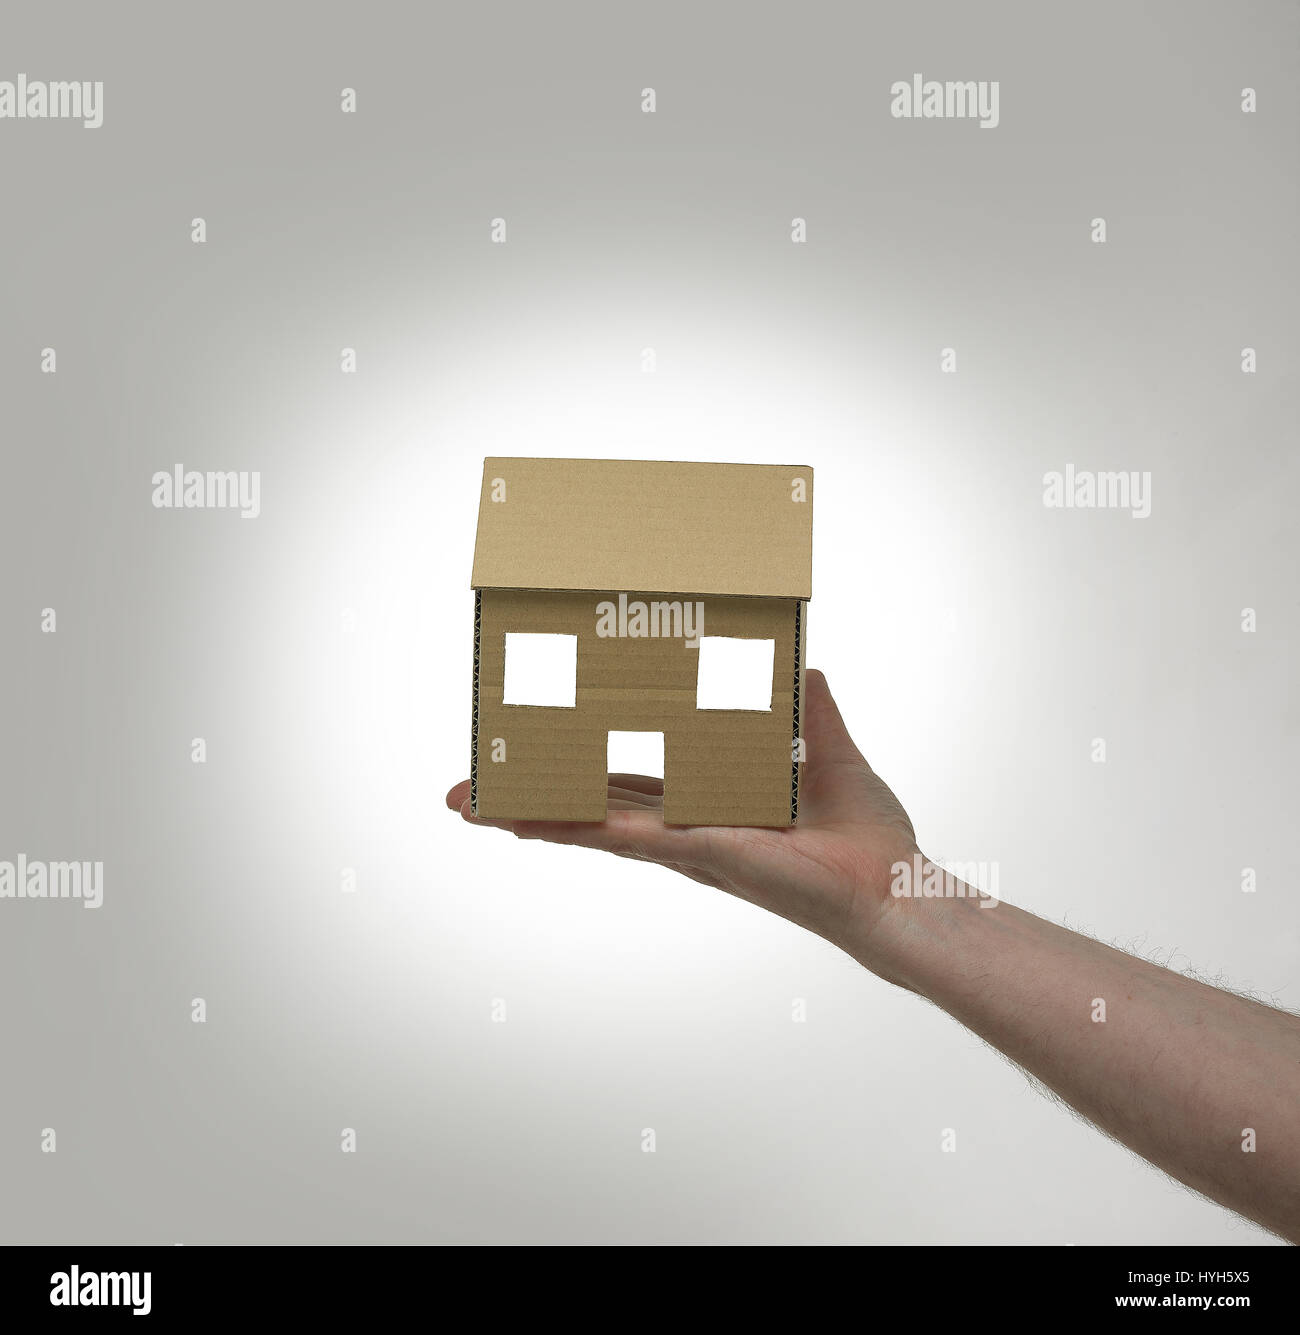 Cardboard House held in hand. Stock Photo